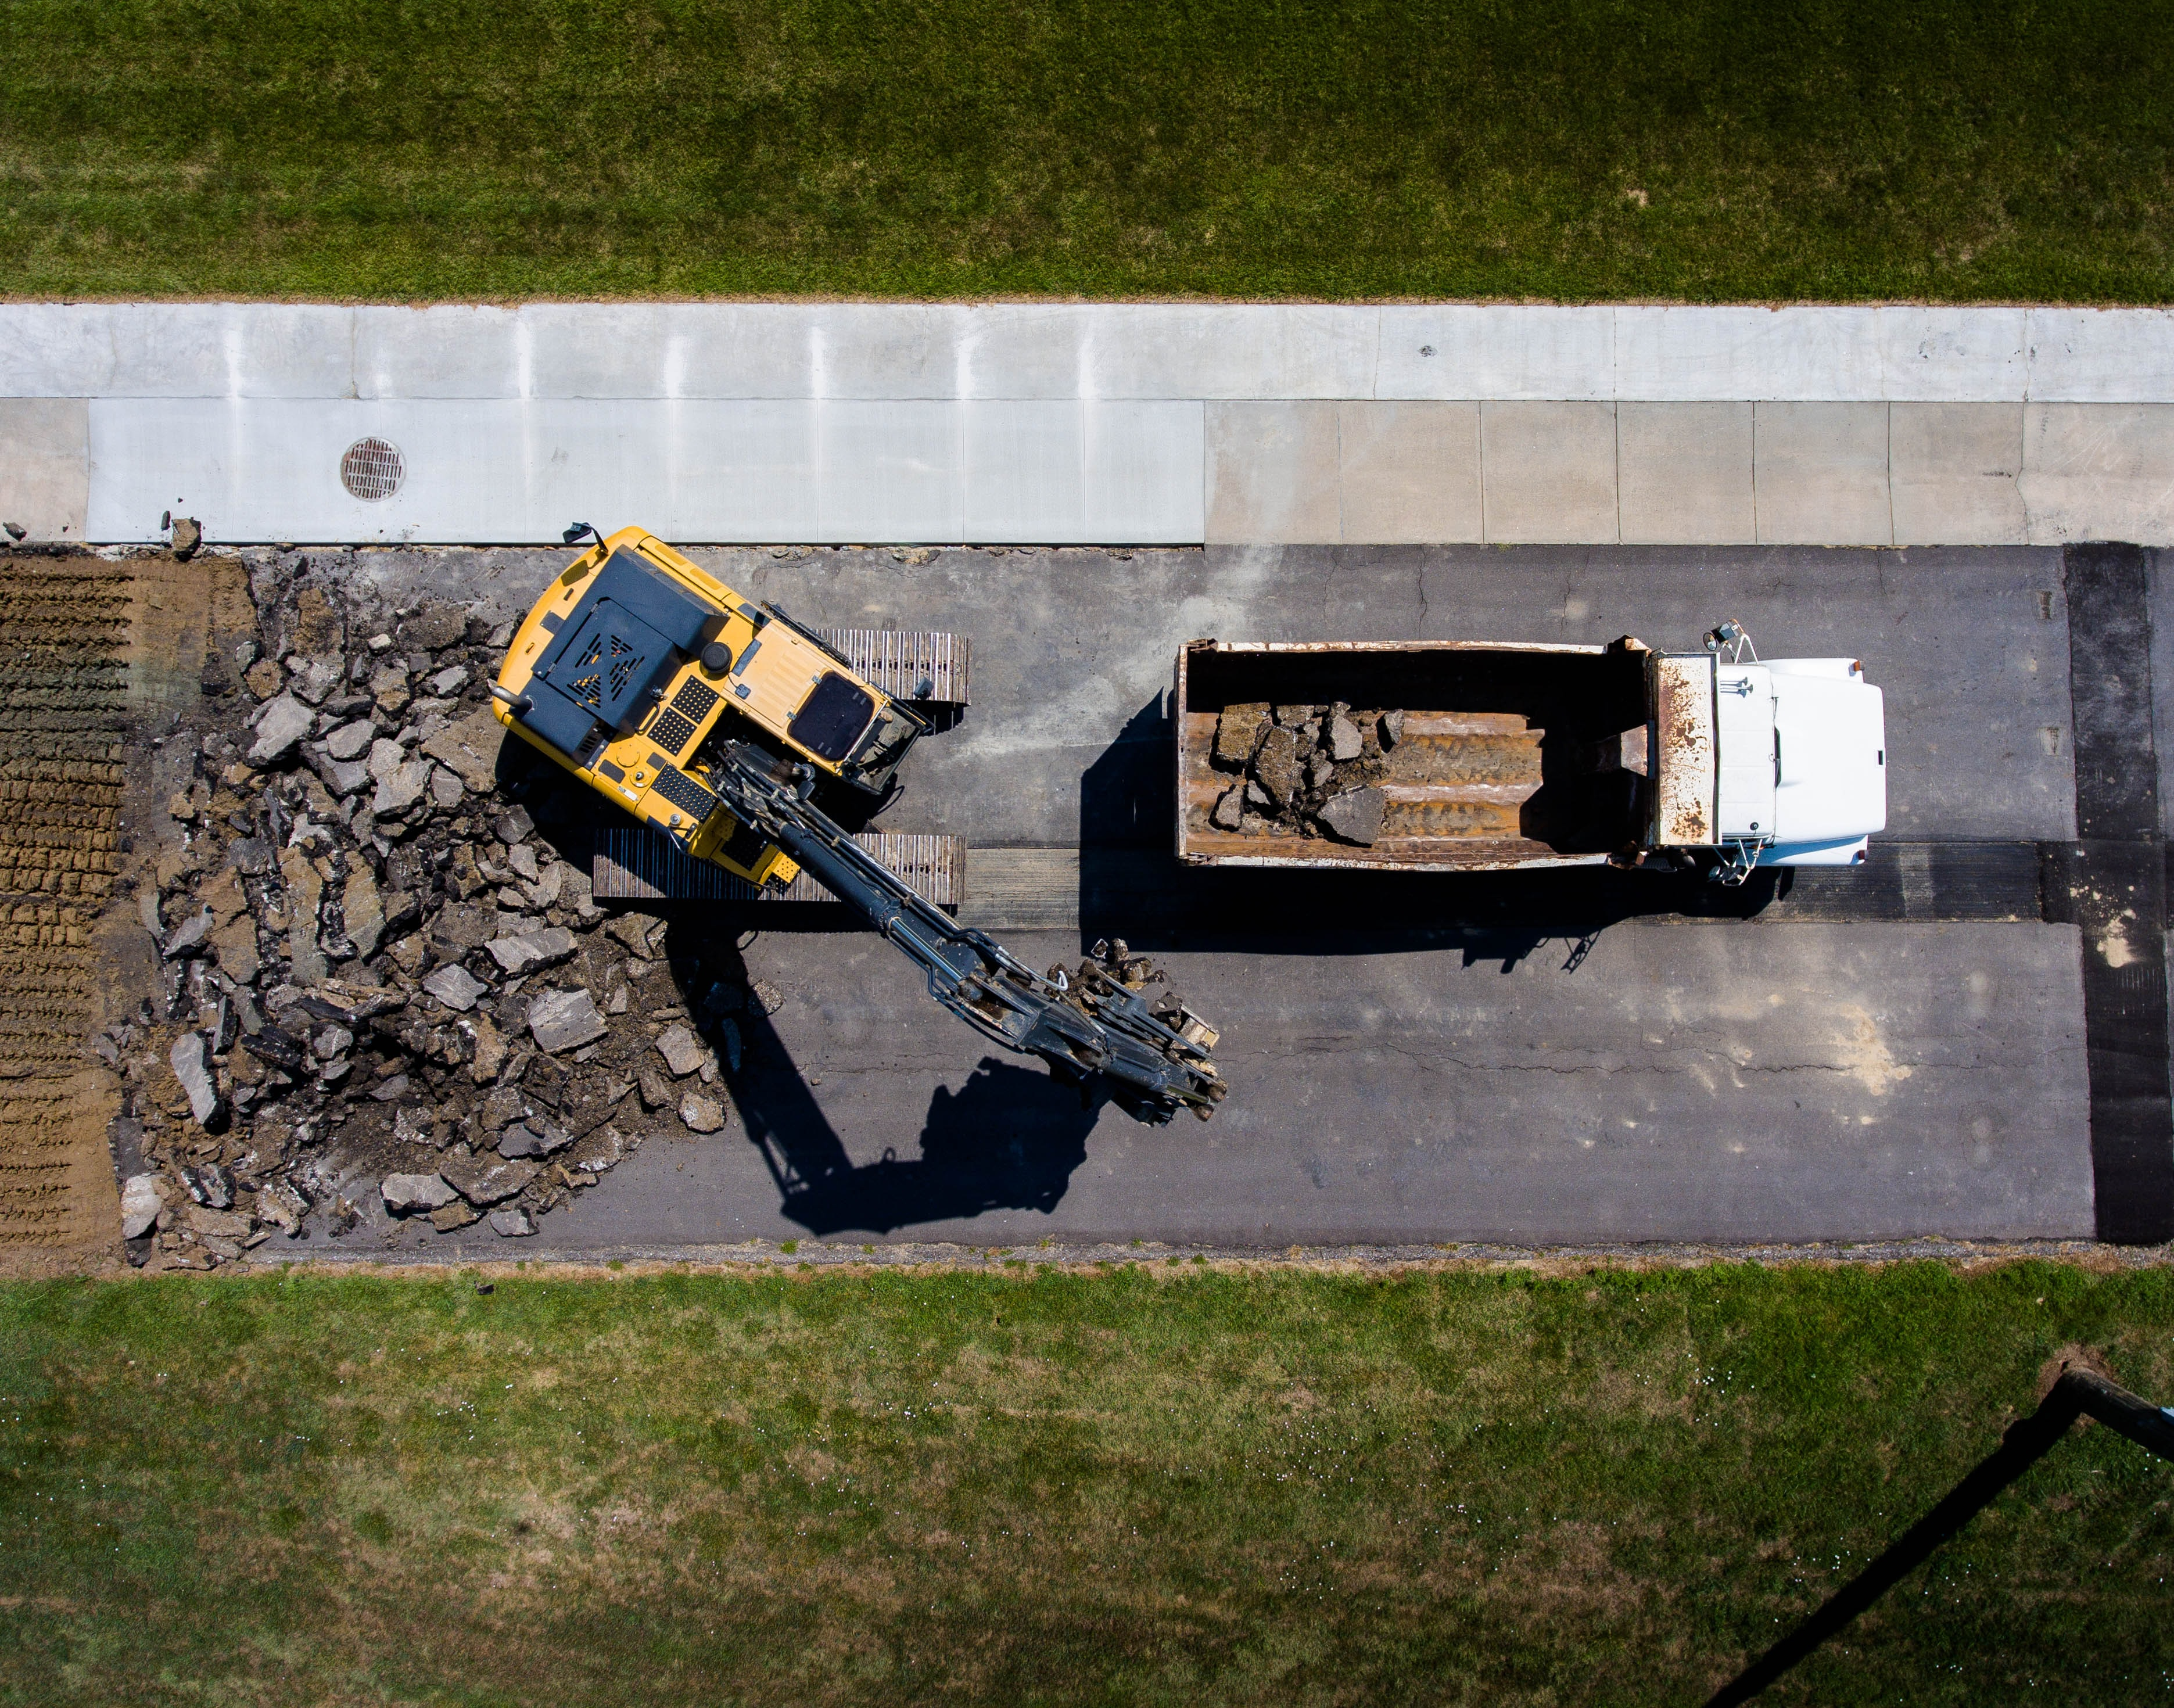 This drone shot came from the progress on the high school track in town. The old track needed to be tore completely out, the base dried out, and a new base laid. Truck after trucked hauled the old asphalt out. It was amazing to watch them work.